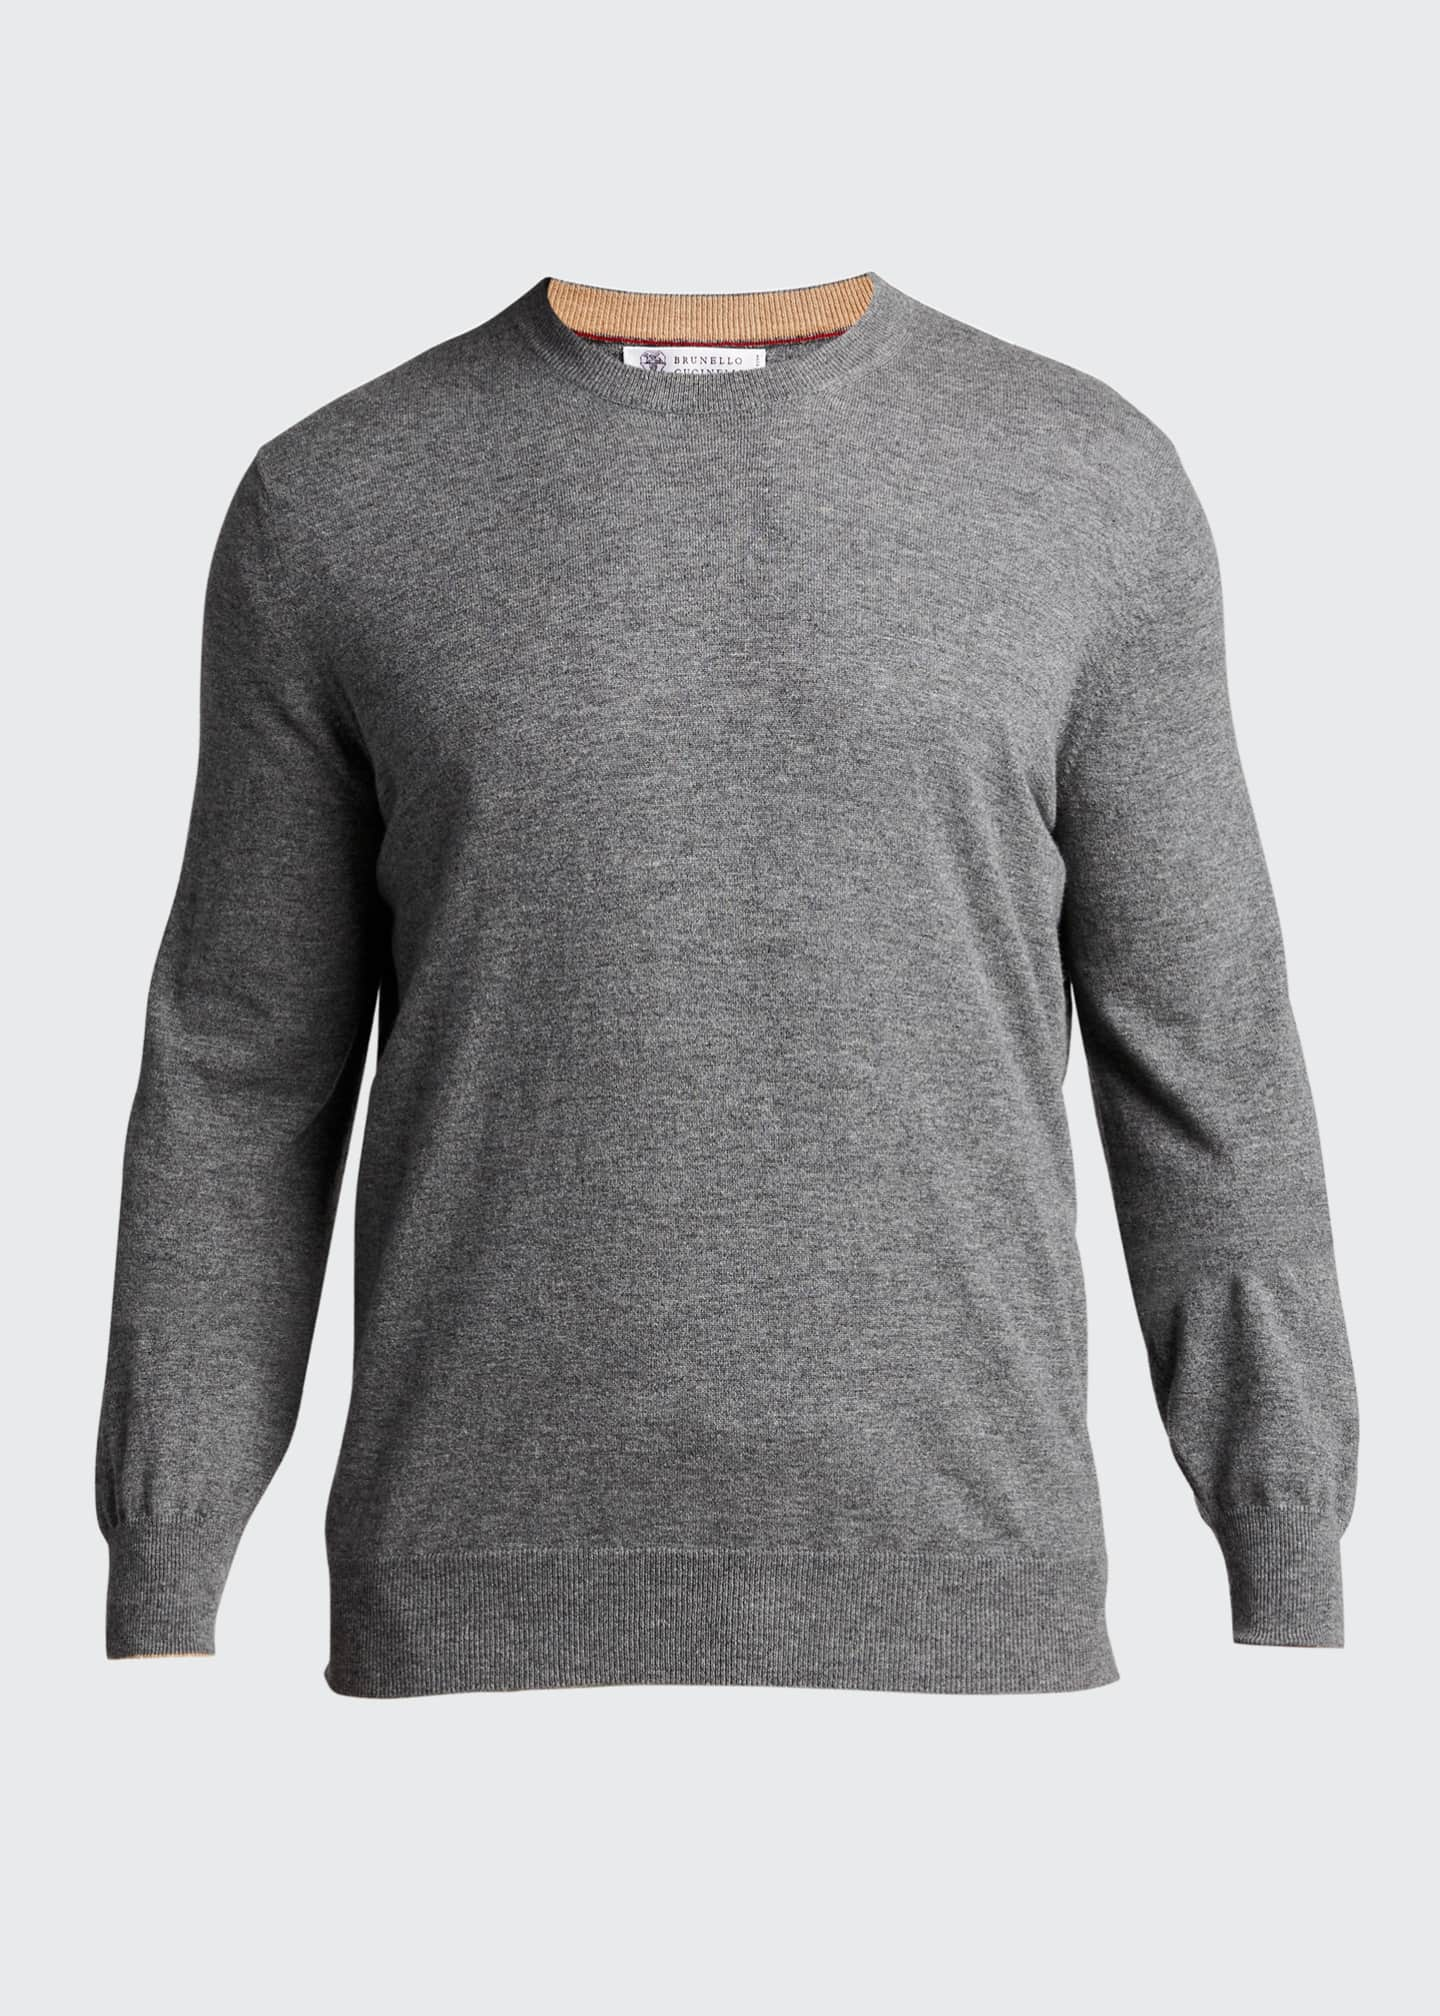 Image 5 of 5: Men's 2-Ply Cashmere Crew Sweater